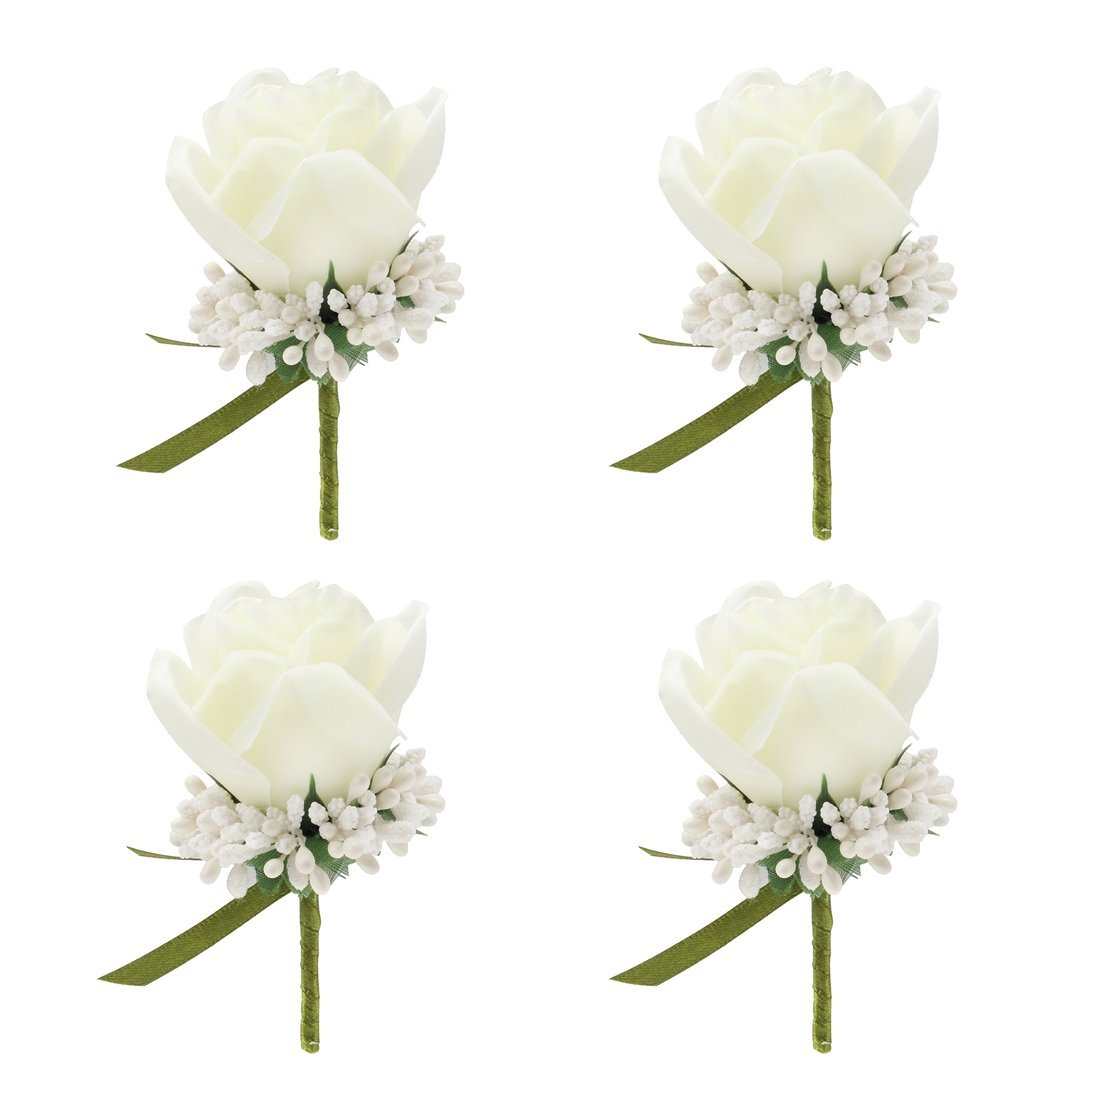 JaosWish-4PCS-Flower-Men-Boutonniere-Handmade-Silk-Men-Corsage-for-Wedding-Party